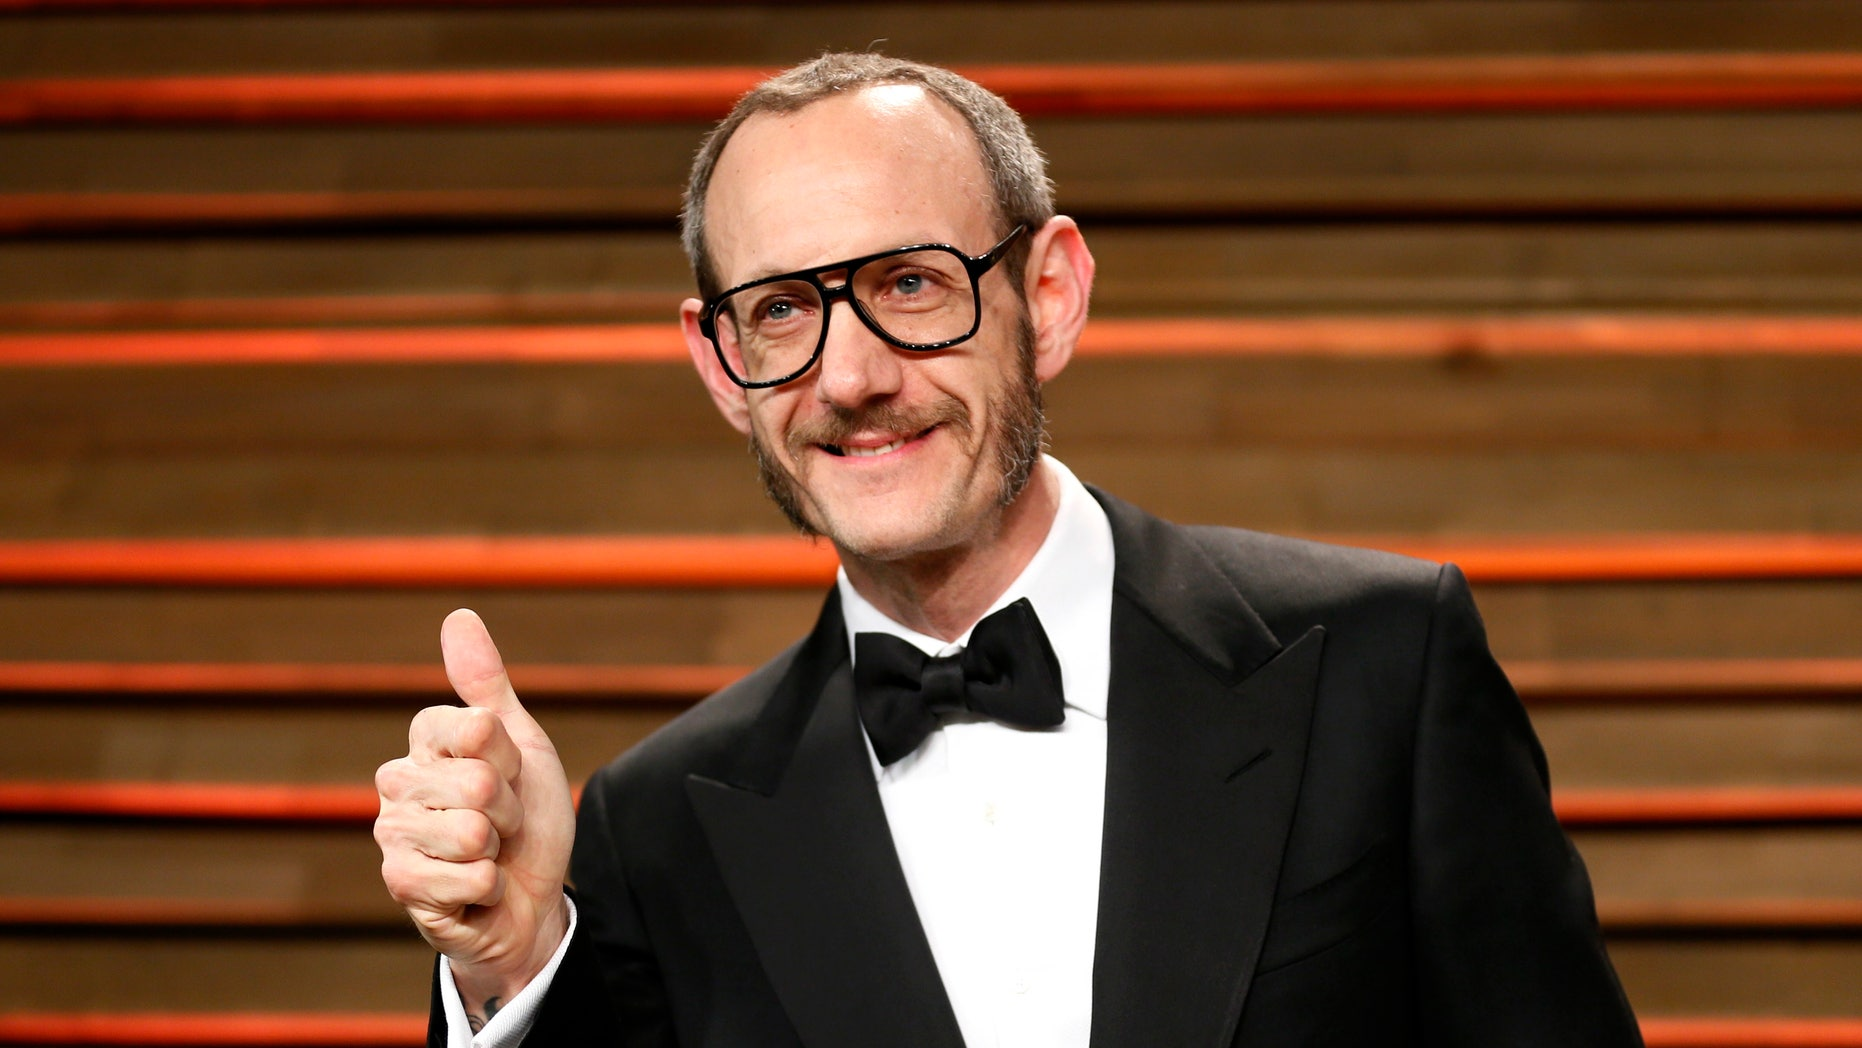 Photographer Terry Richardson arrives at the 2014 Vanity Fair Oscars Party in West Hollywood, California March 2, 2014.